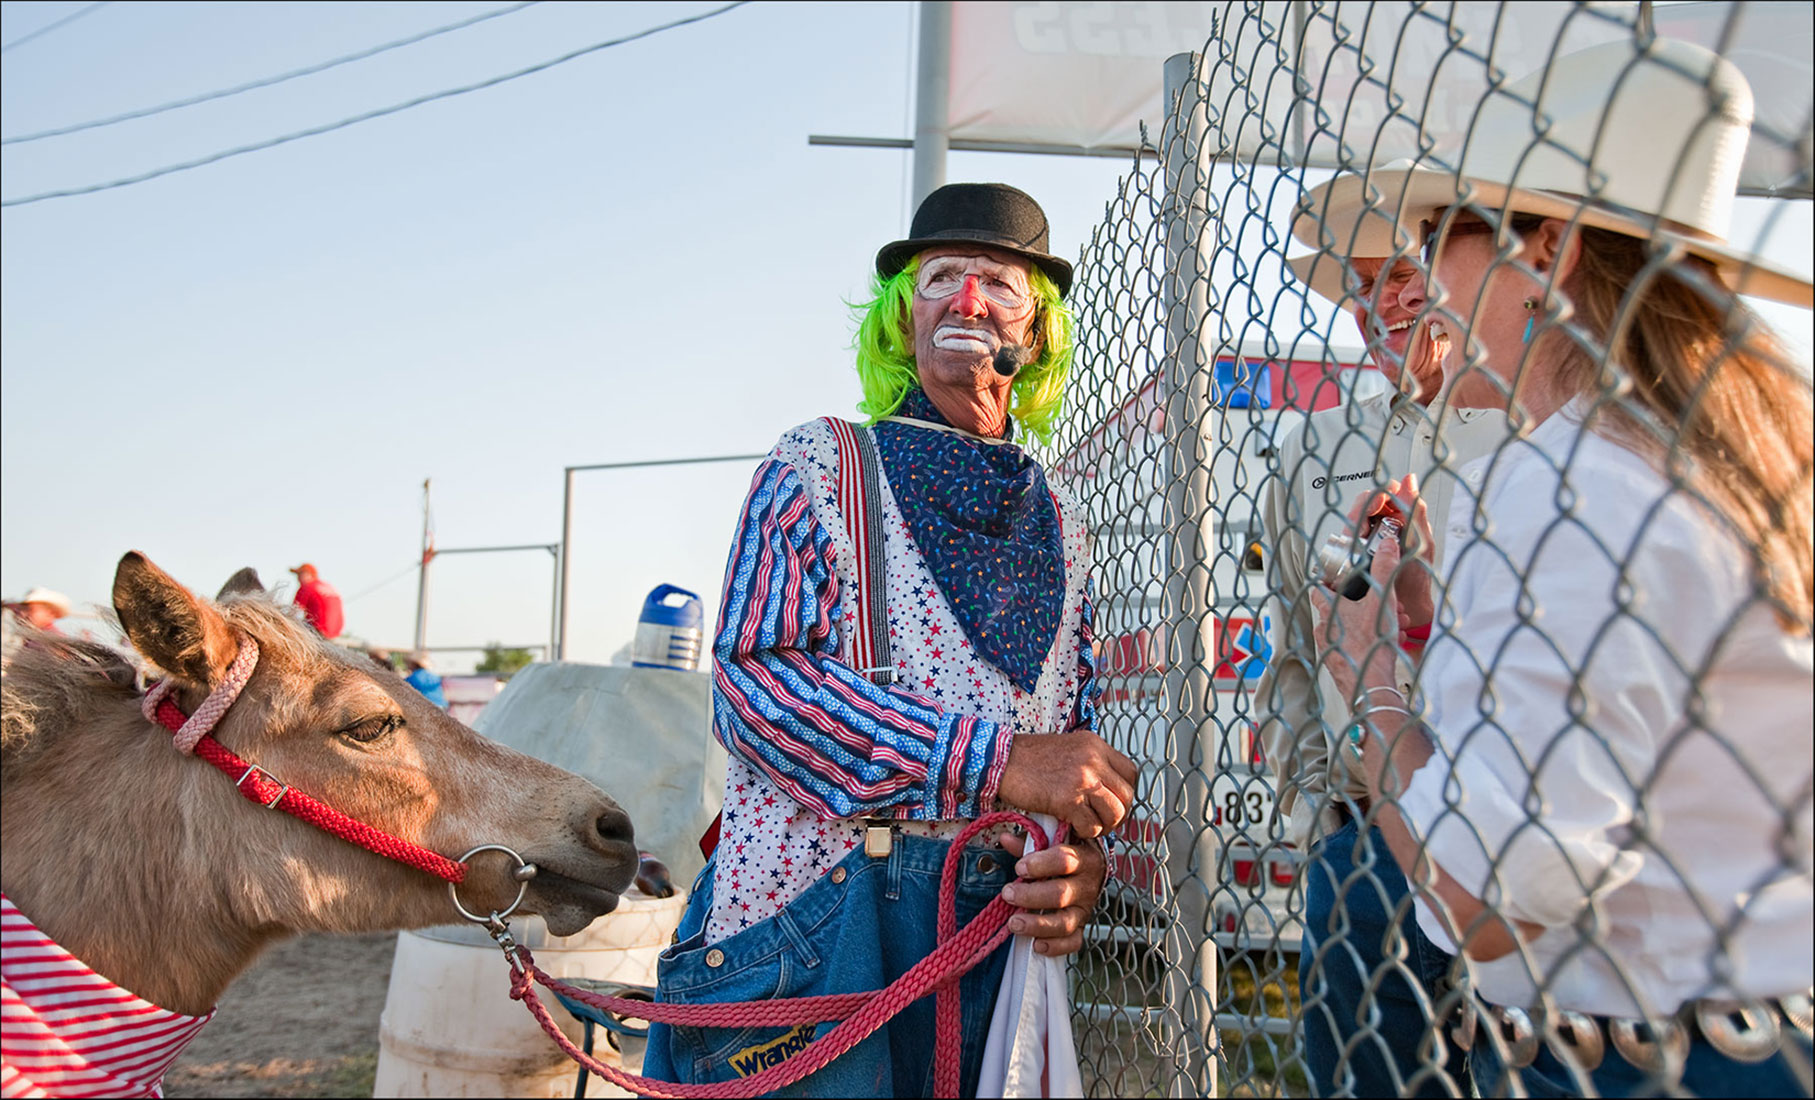 090606_rodeo_0296